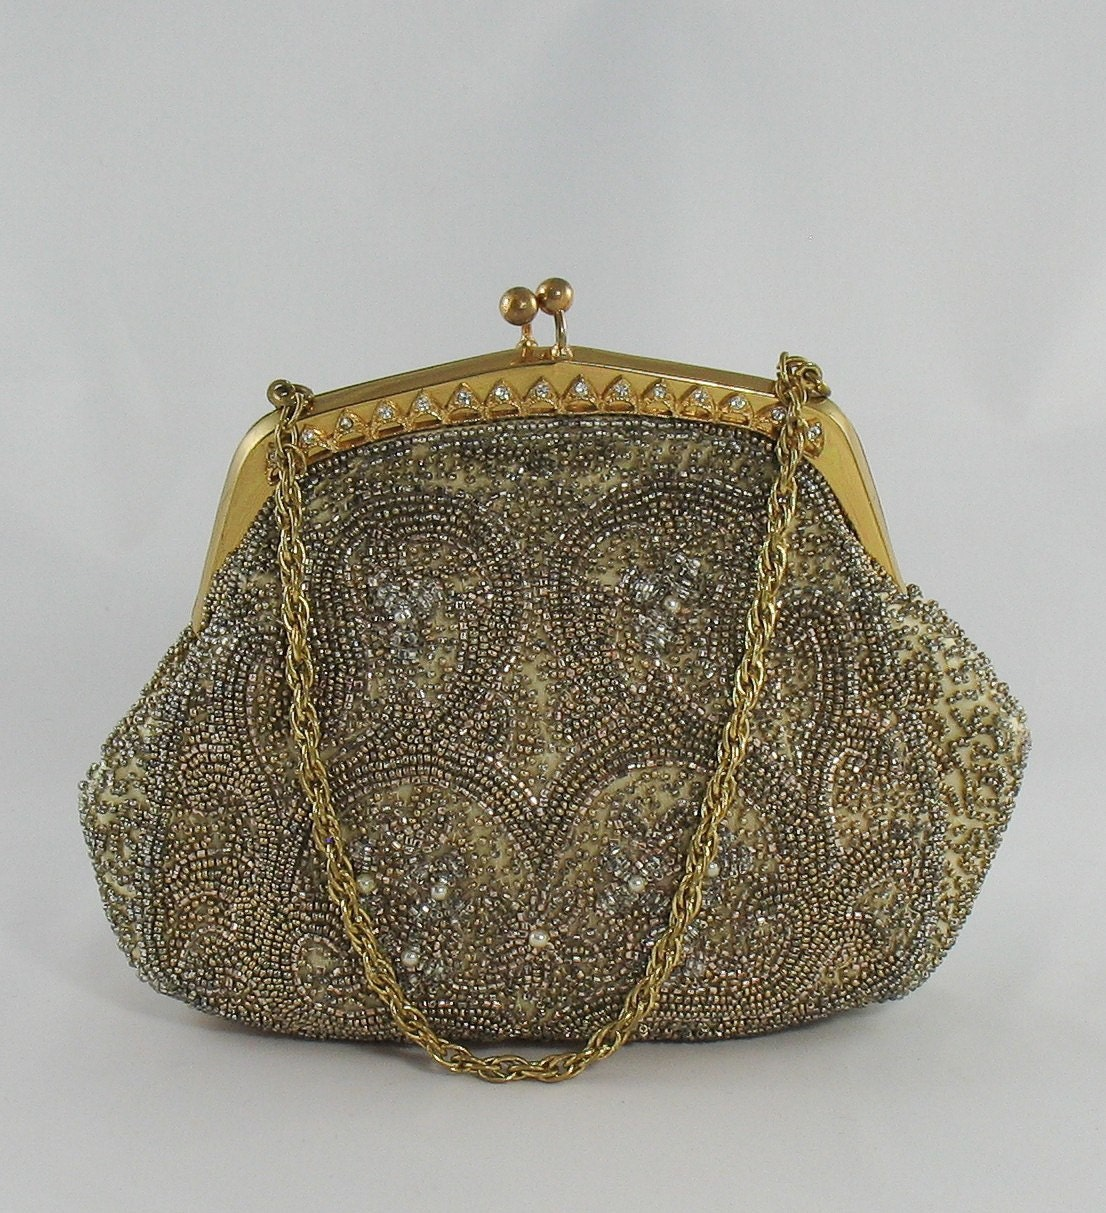 Evening bags vintage won't disappoint